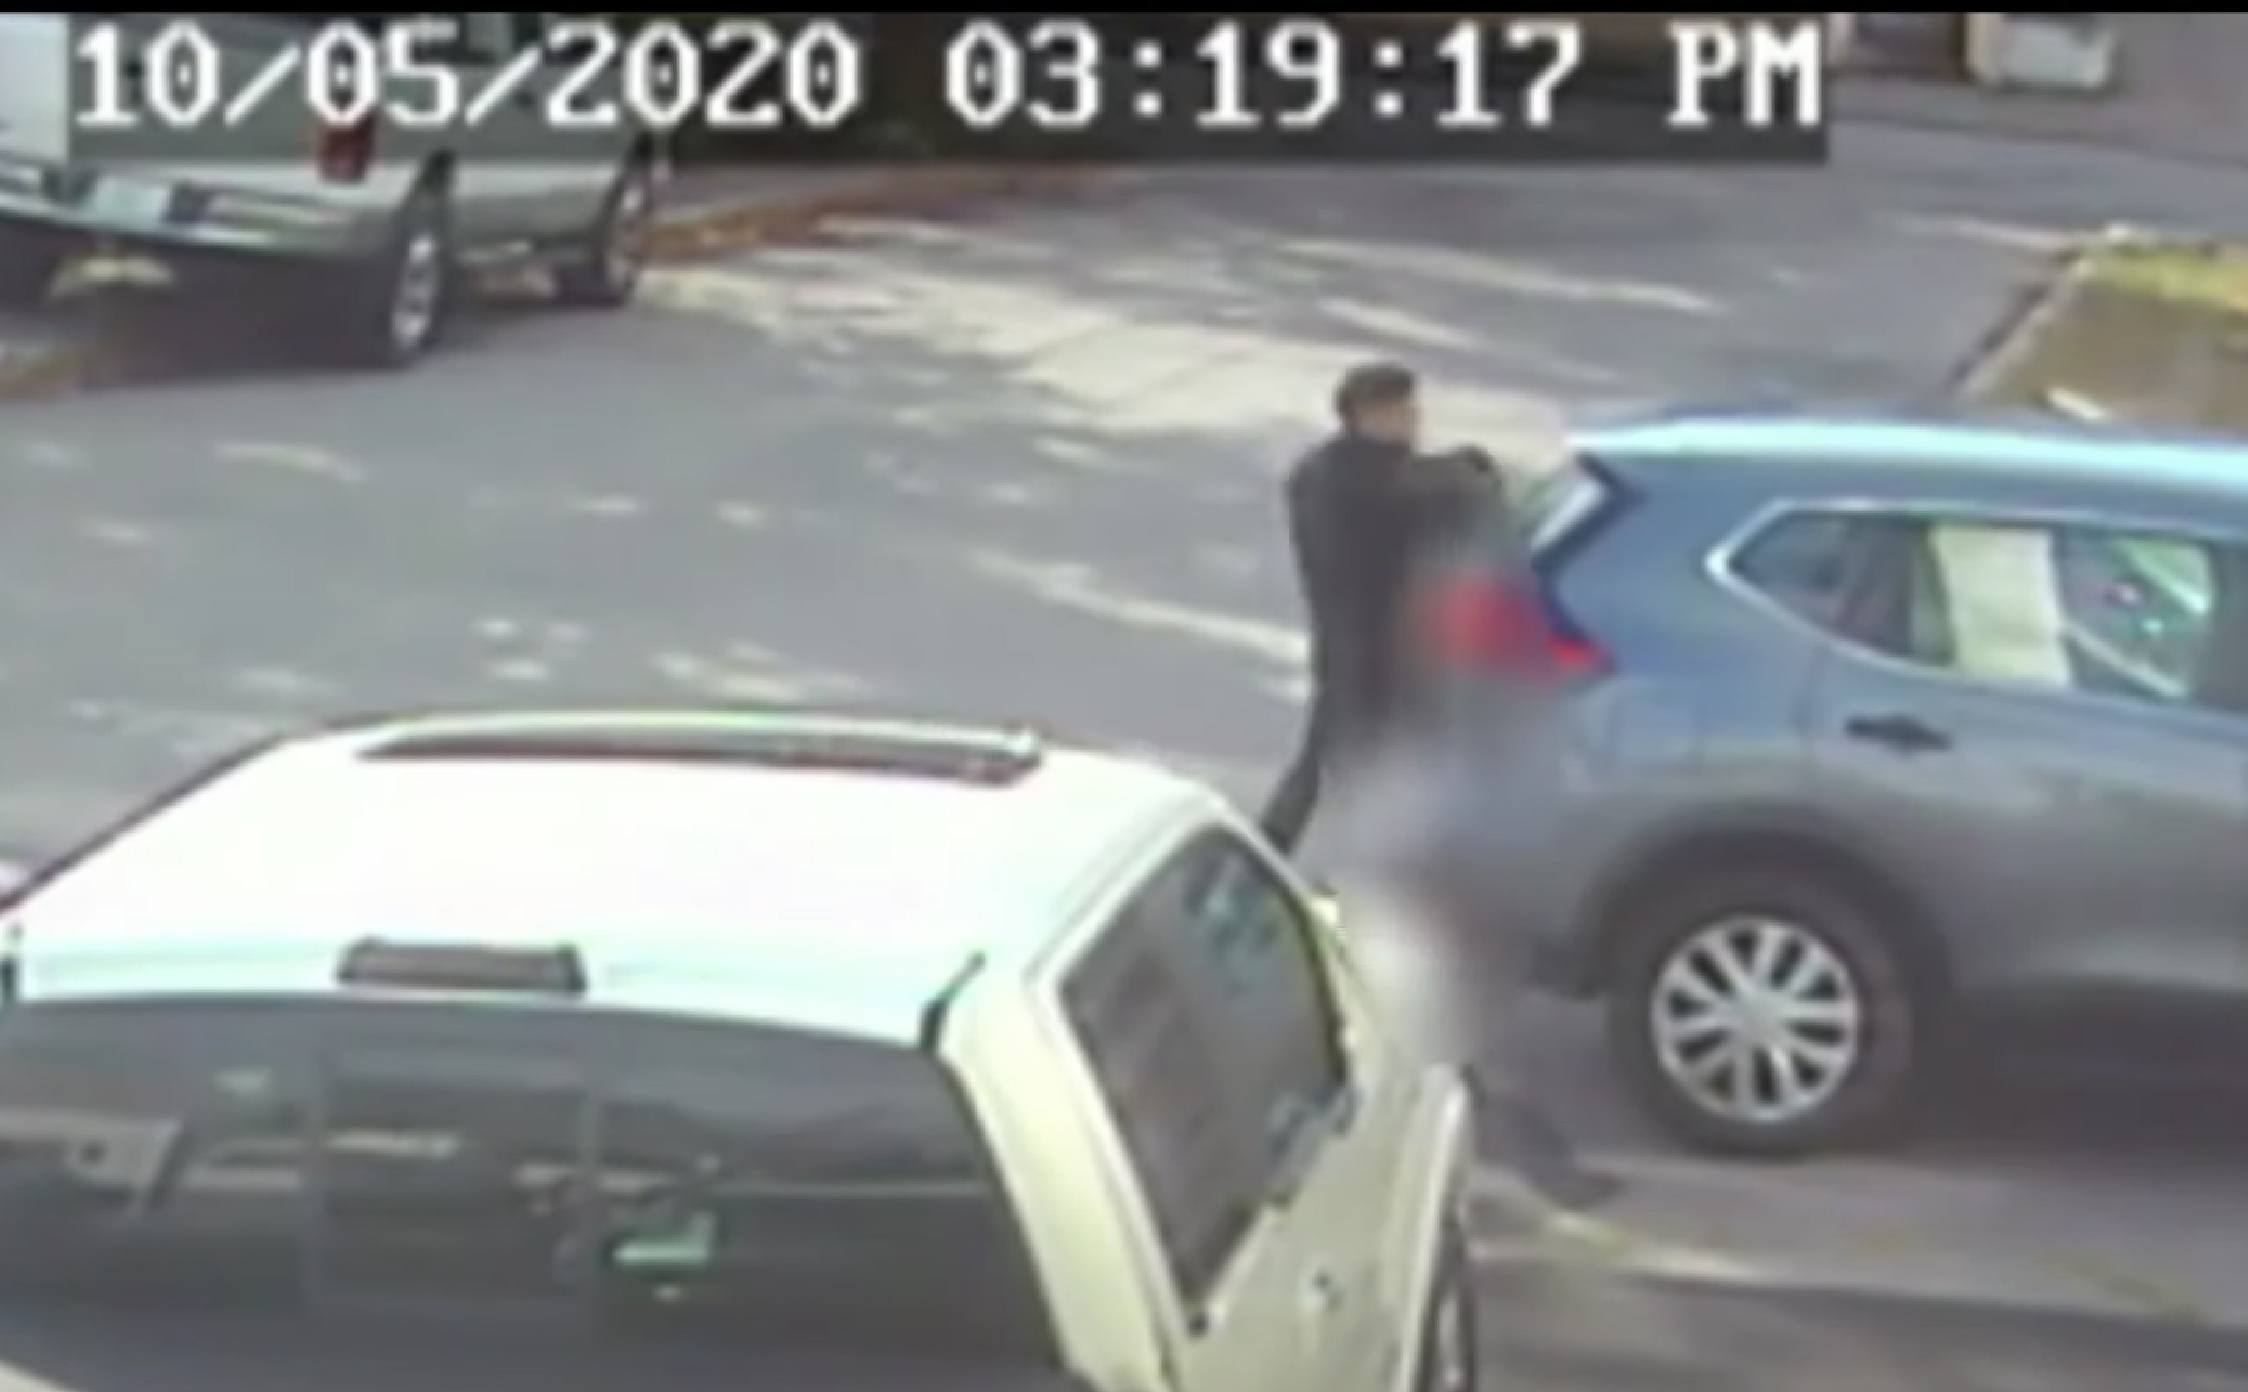 [VIDEO] Chilling Moment Stranger Kidnaps 9-Year-Old Little Girl After She Gets Off School Bus Caught on Tape